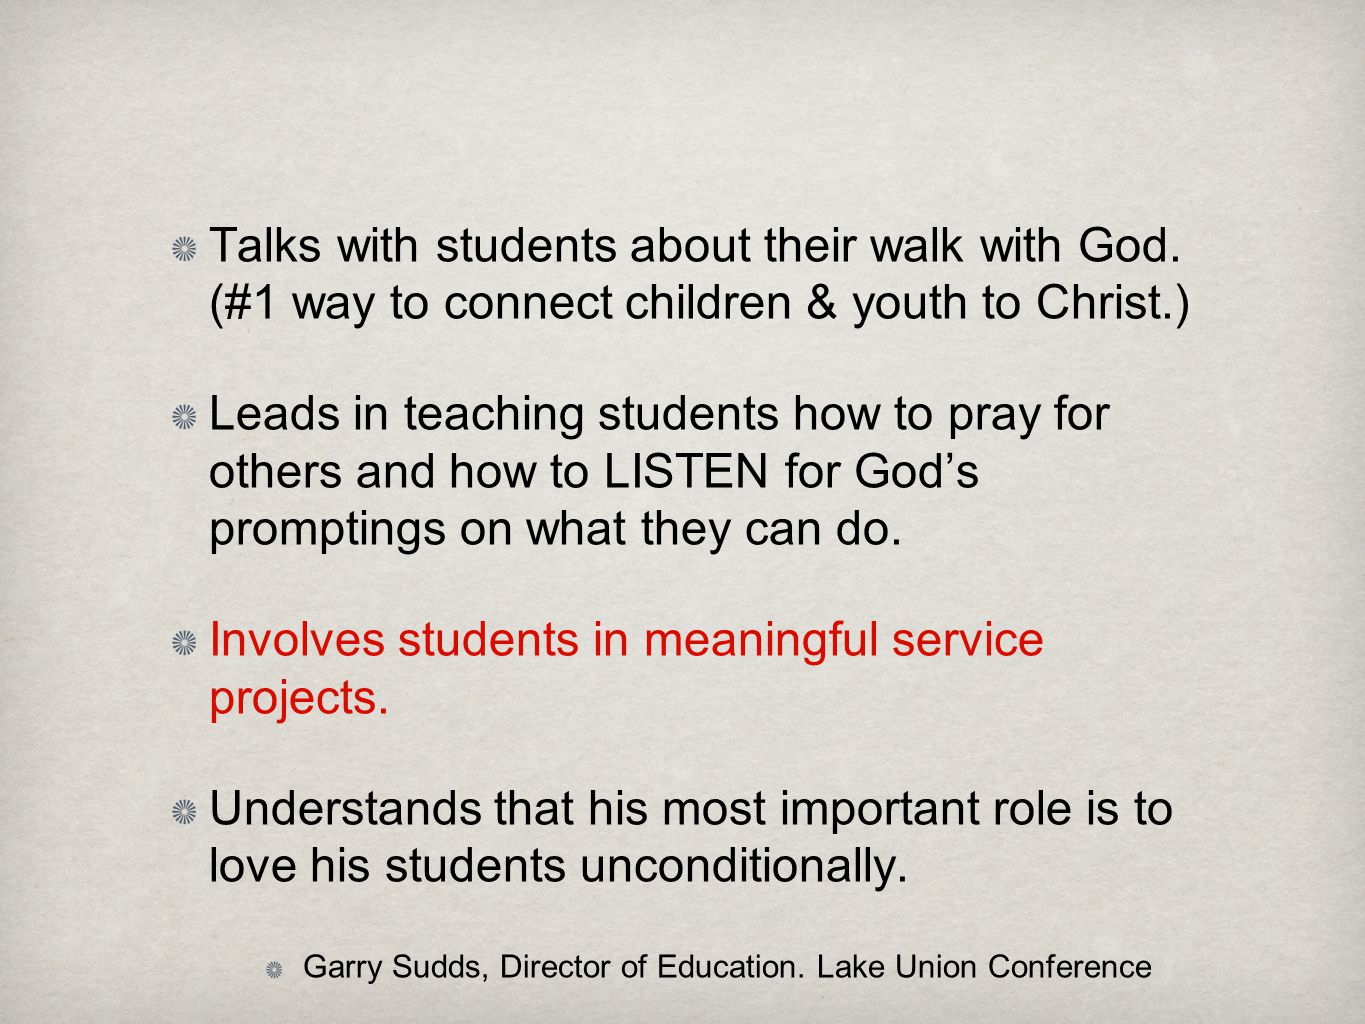 Involves students in meaningful service projects.